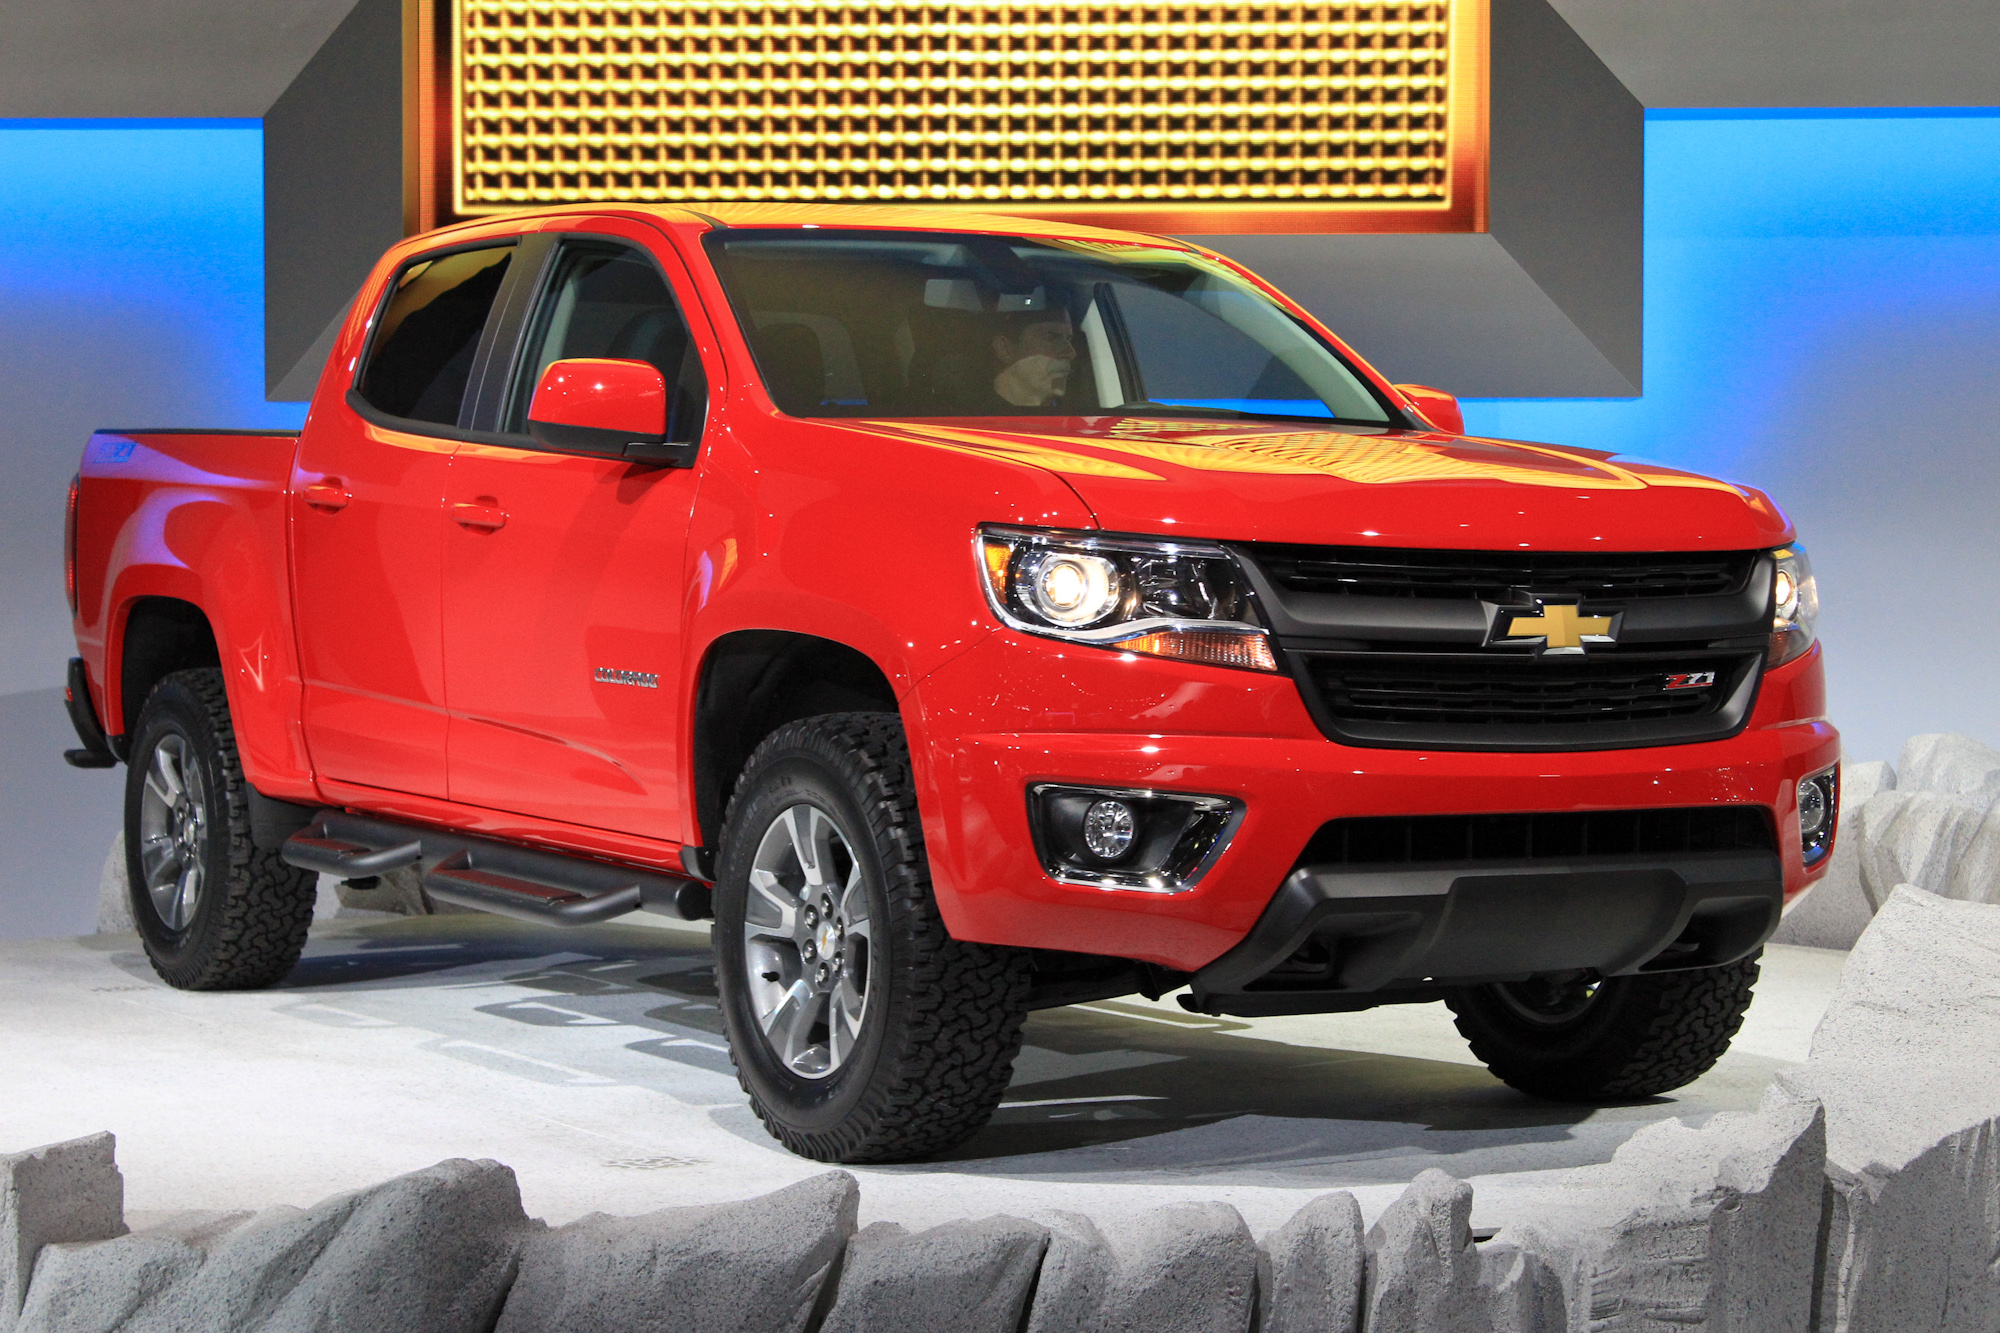 2015 chevy colorado gmc canyon gas mileage 20 or 21 mpg combined for v 6. Black Bedroom Furniture Sets. Home Design Ideas